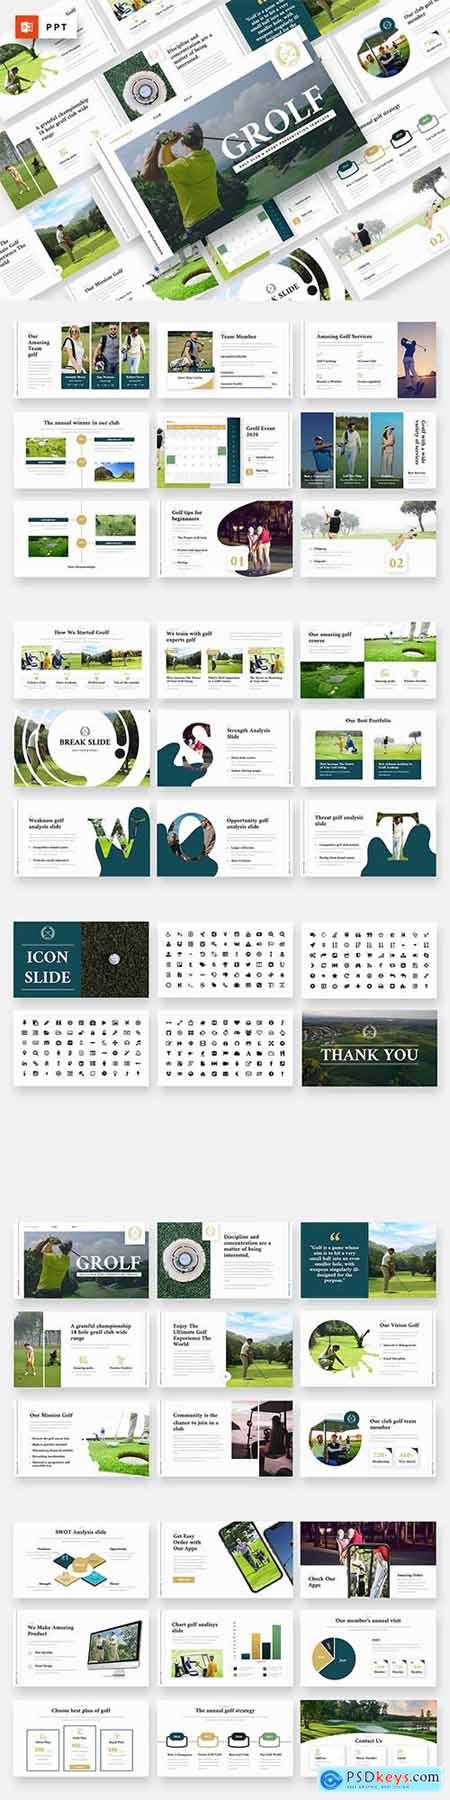 GROLF - Golf Club & Sport Powerpoint Template